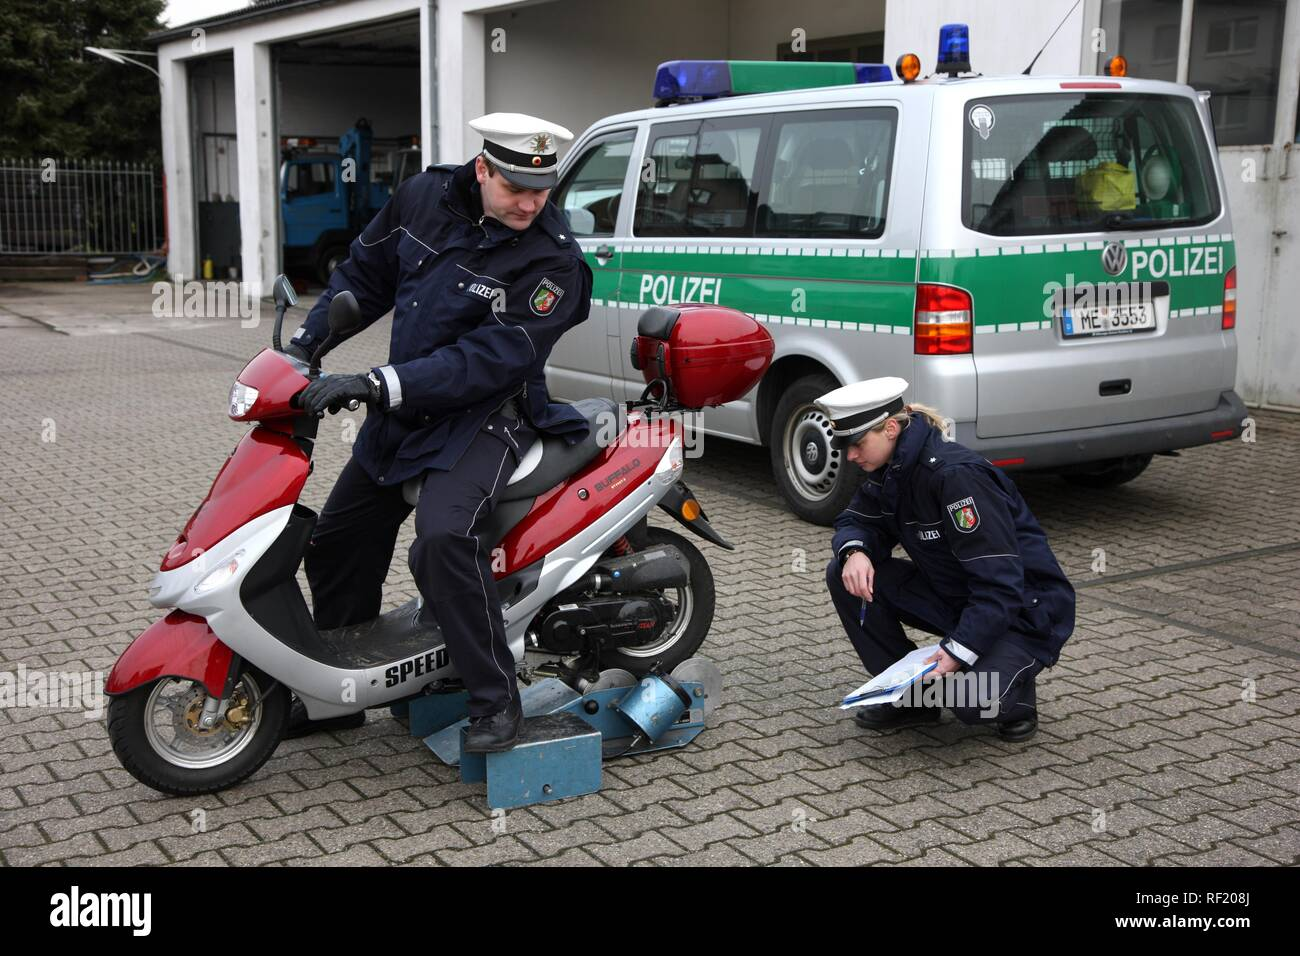 Police officers checking a small moped that has been manipulated and tuned, Mettmann, North Rhine-Westphalia - Stock Image